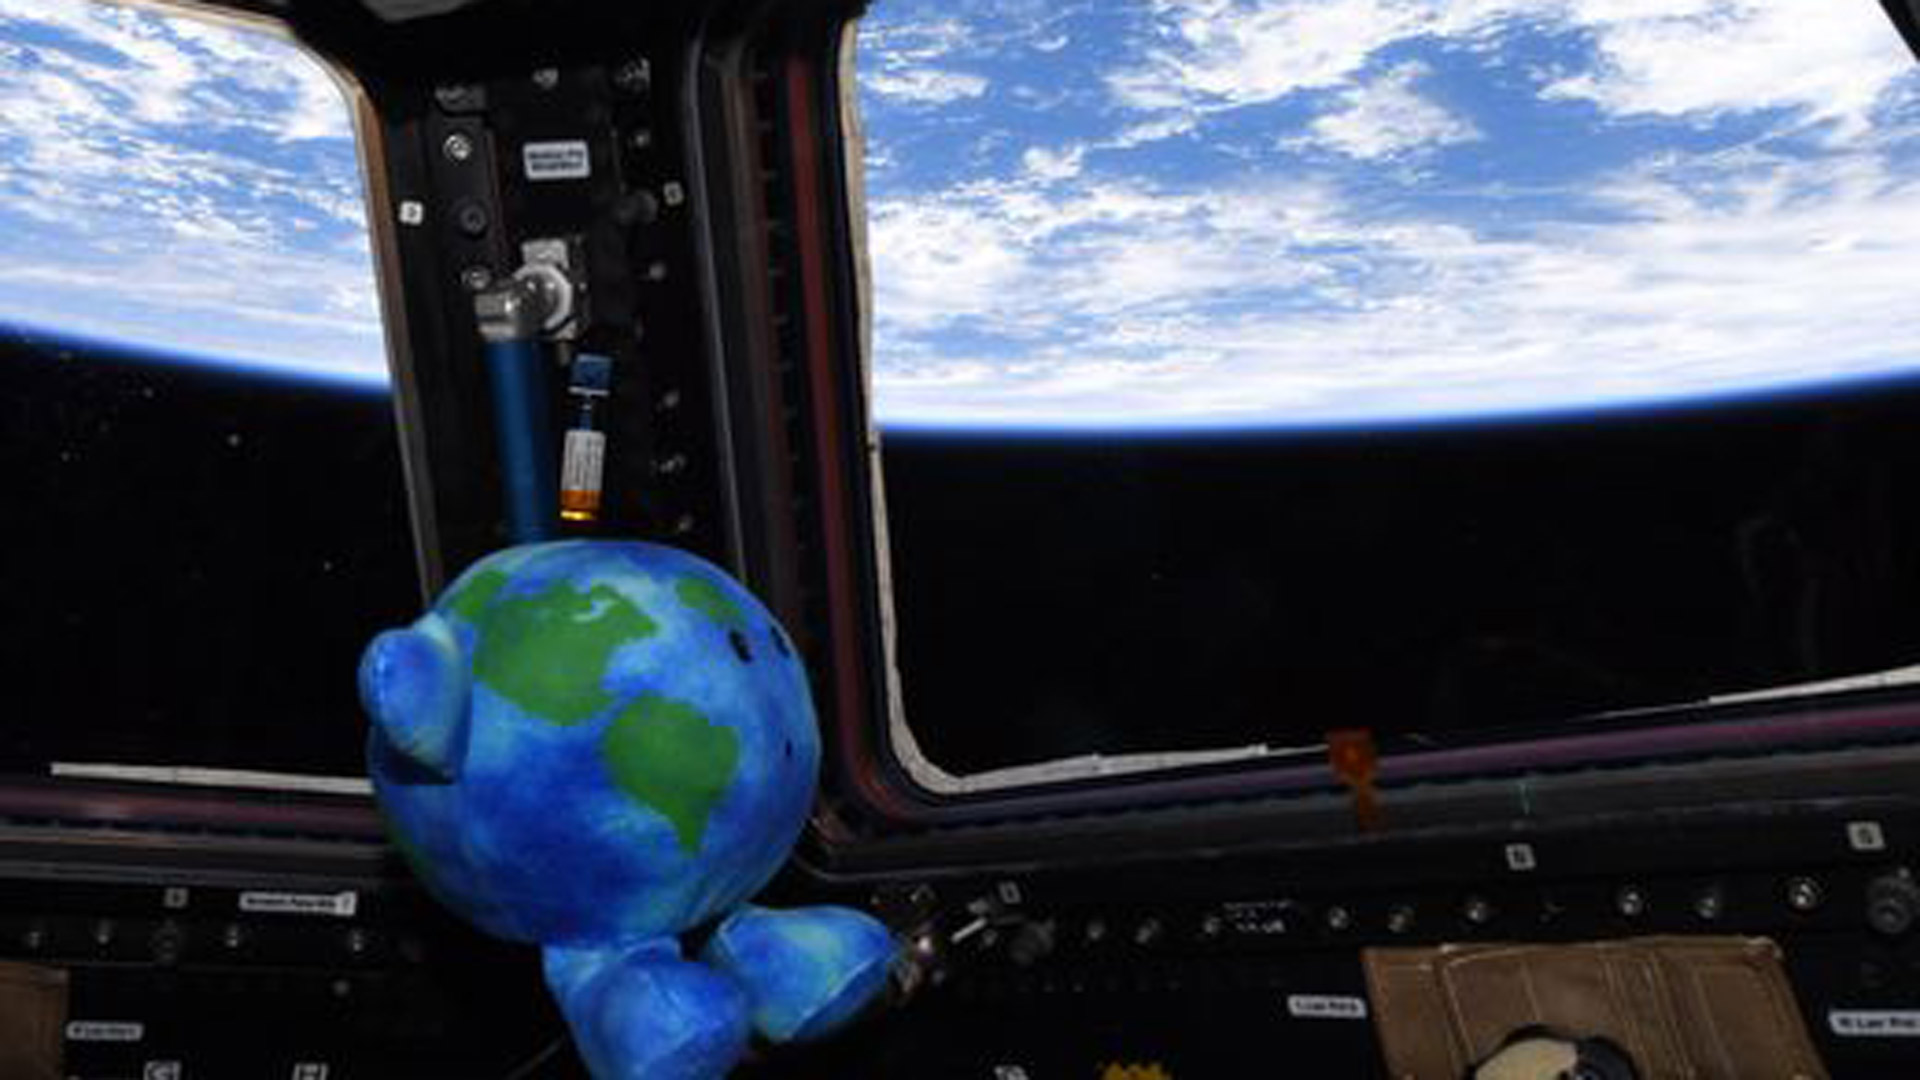 Celestial Buddies plush Earth toy is floating in the international space station. It is shaped and colored like a small Earth with a suprised expression. It is looking out a window towards Earth.